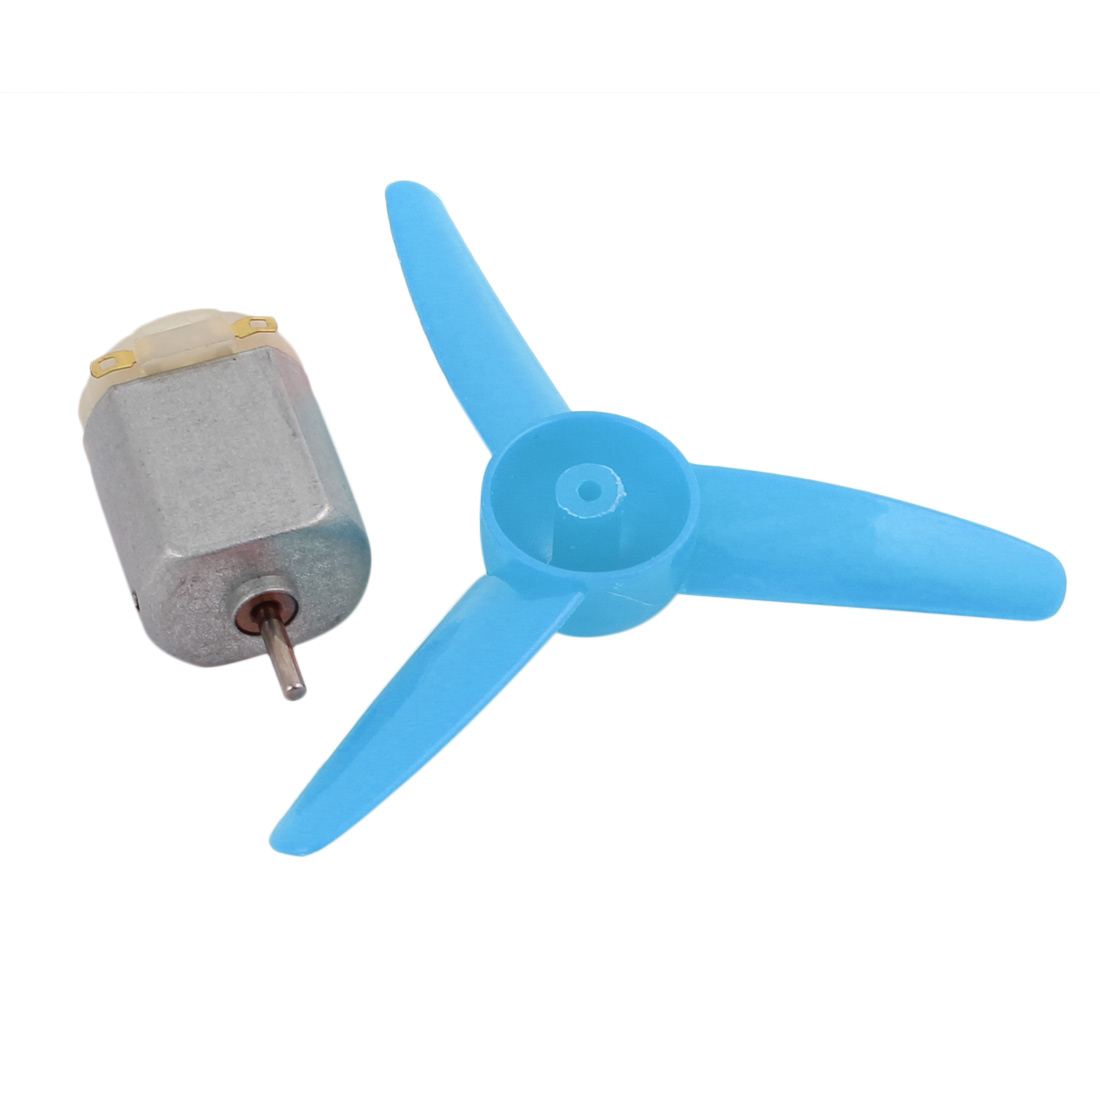 F130S DC 12V 20000RPM Mini Electric Motor w Blue Propeller for RC Model - image 2 de 5